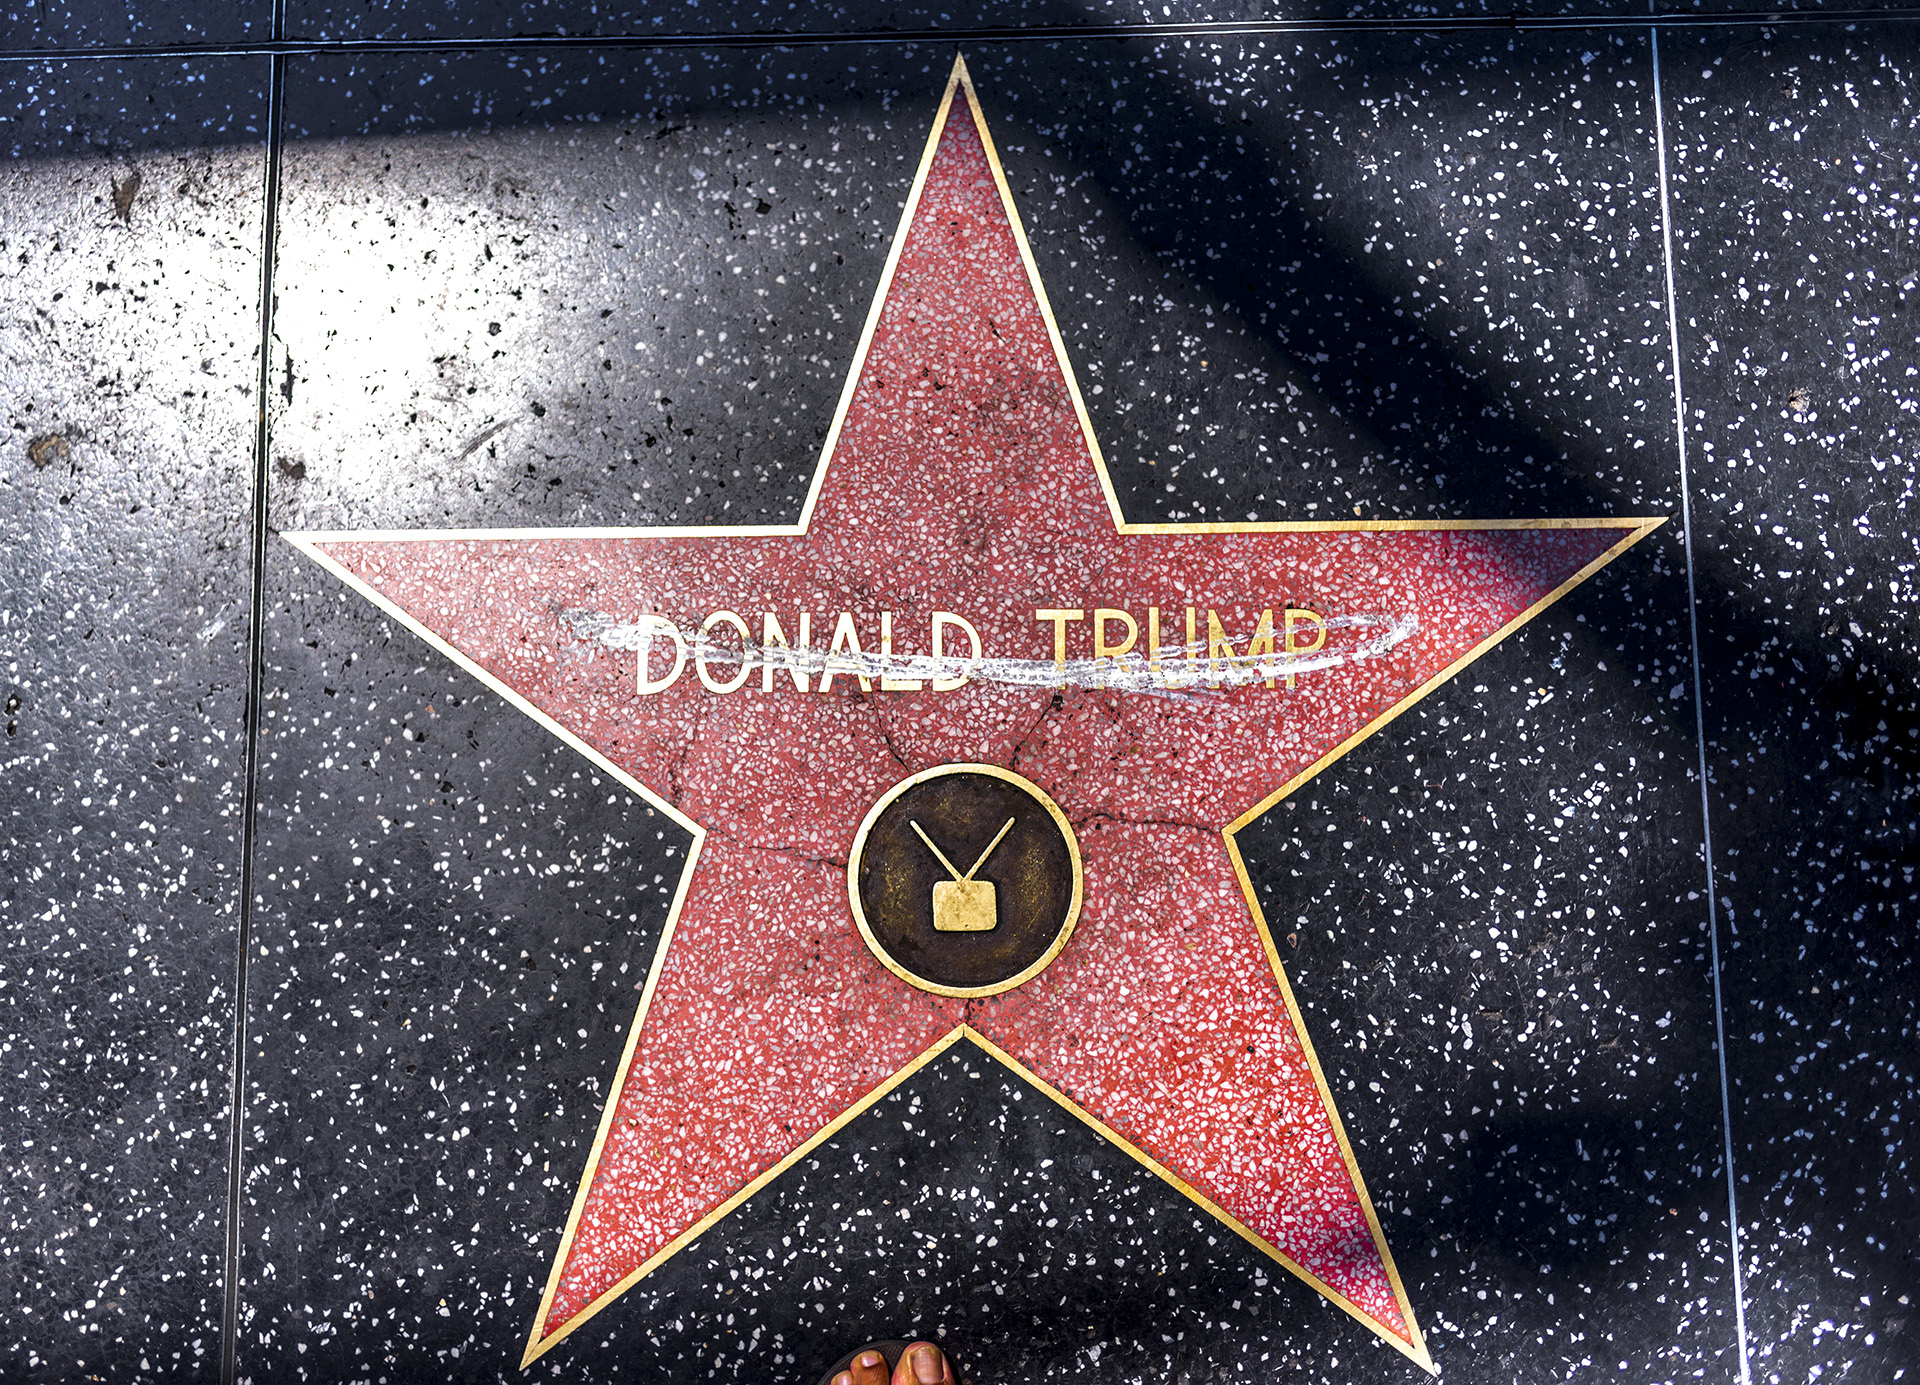 Donald Trump's star on Hollywood Blvd, with chalk lines running through his name